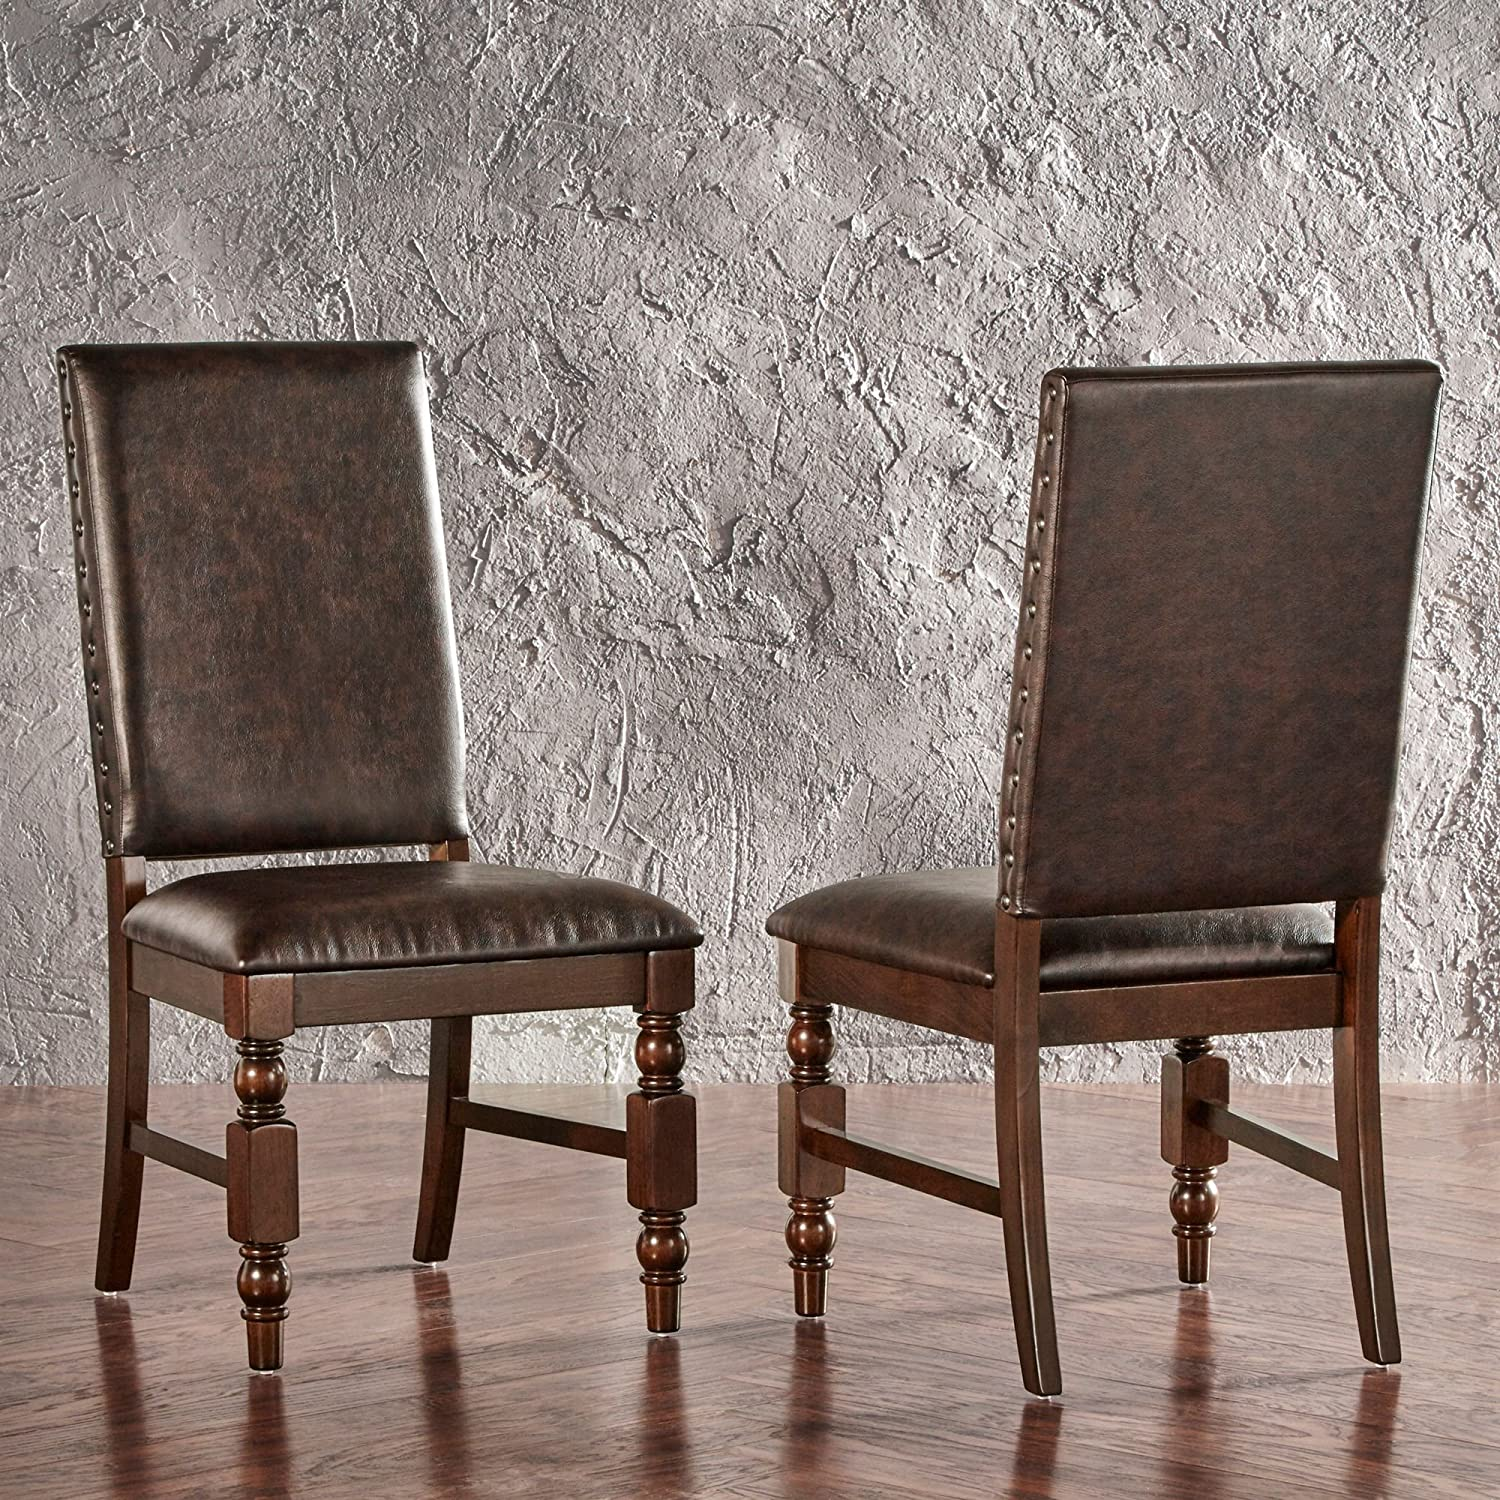 Superb Modhaus Living Modern Rustic Upholstered Accent Dining Chairs With Nailhead And Wood Legs Set Of 2 Includes Pen Brown Pu Uwap Interior Chair Design Uwaporg